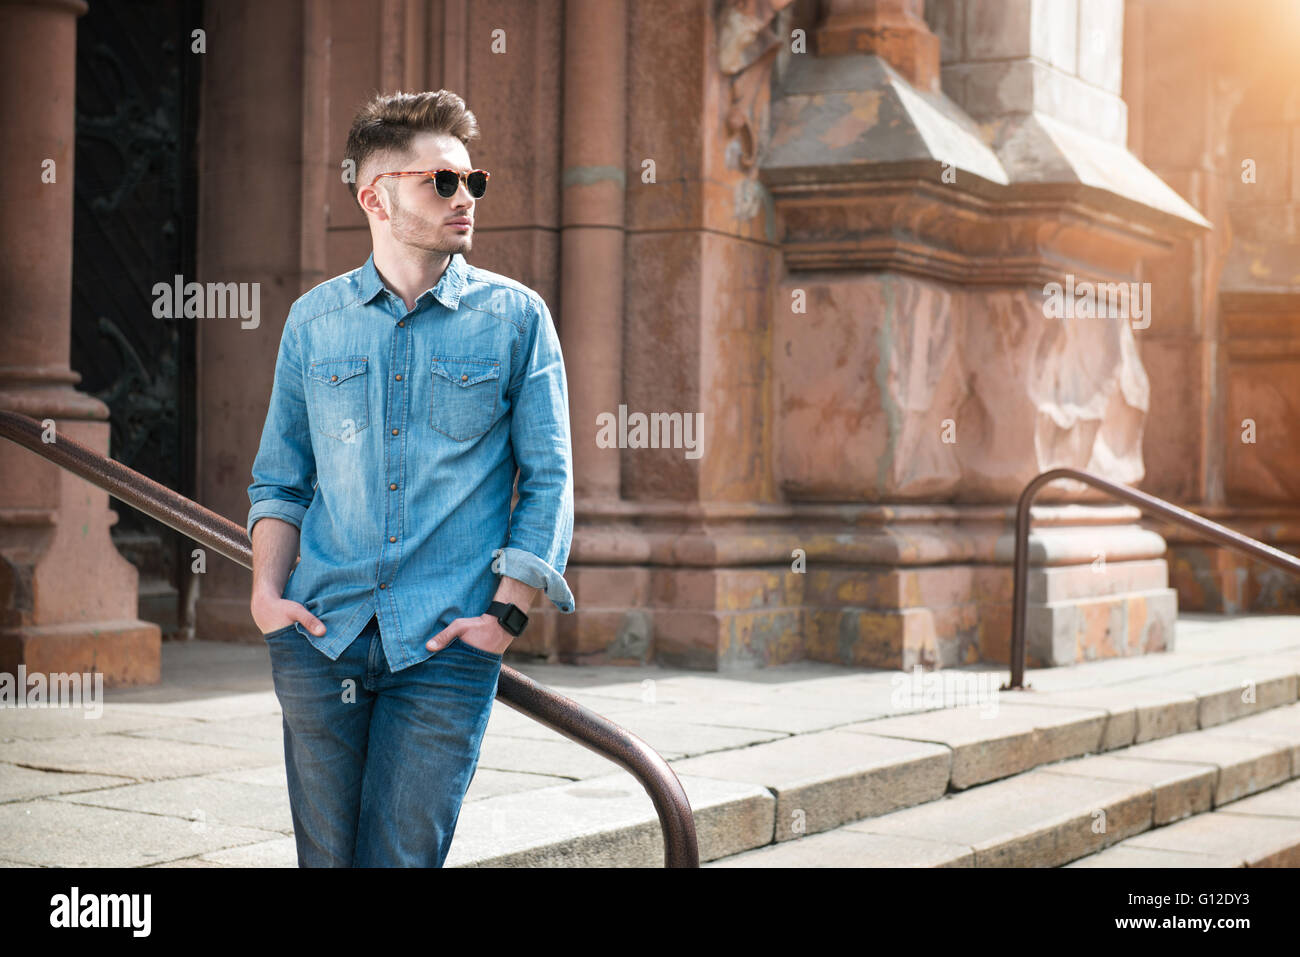 Confident guy leaning on the handrail - Stock Image